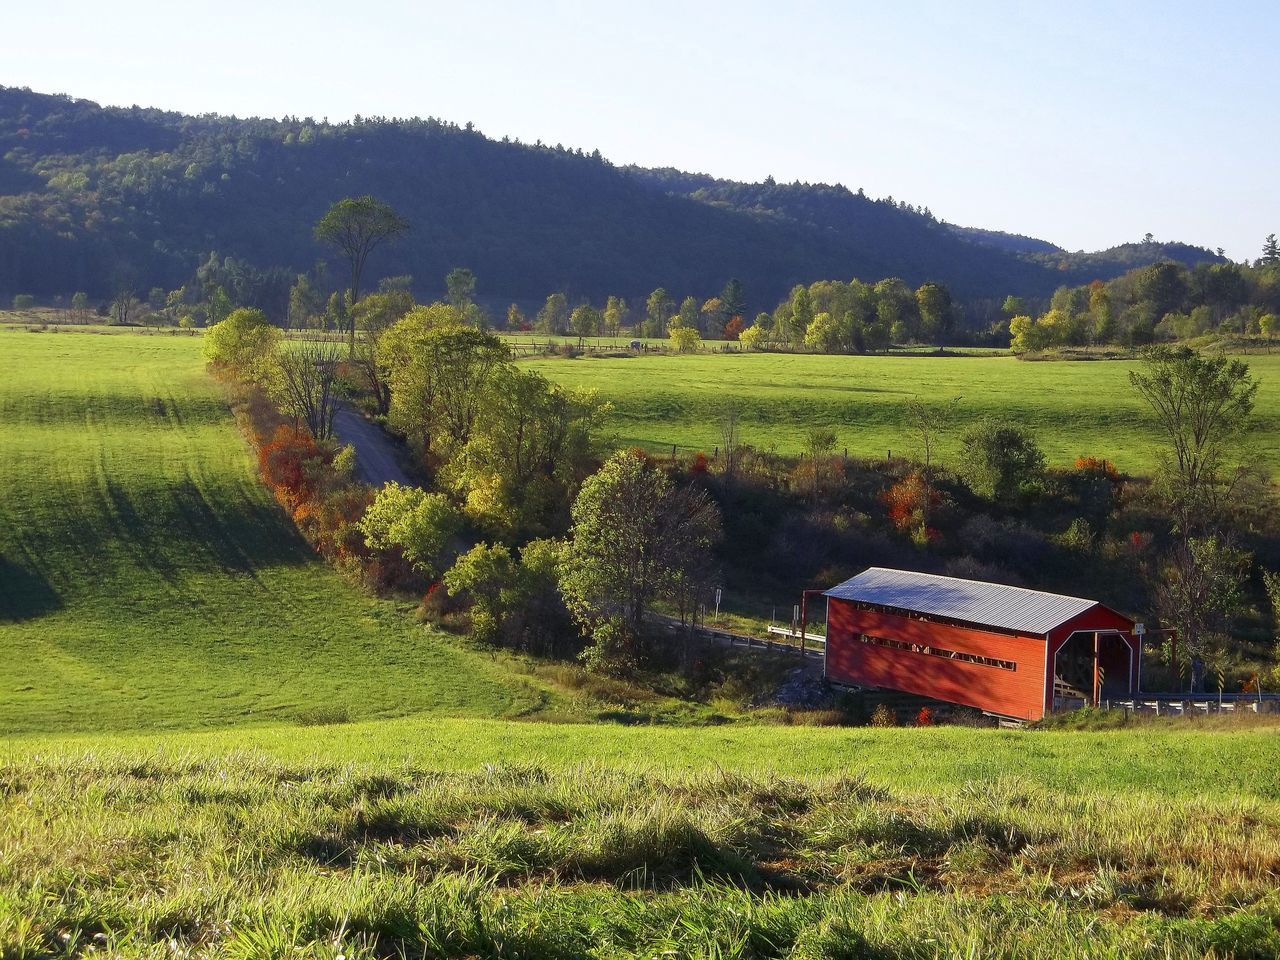 The covered bridge over the creek during the height of summer in the hills . Agriculture Beautiful Countryside Beauty In Nature Covered Bridge Covered Bridges Day Farm Field Grass Green Color Growth Hay Bale Idyllic Landscape Meadow Mountains Nature No People Outdoors Rural Scene Scenics Sky Tranquil Scene Tranquility Tree